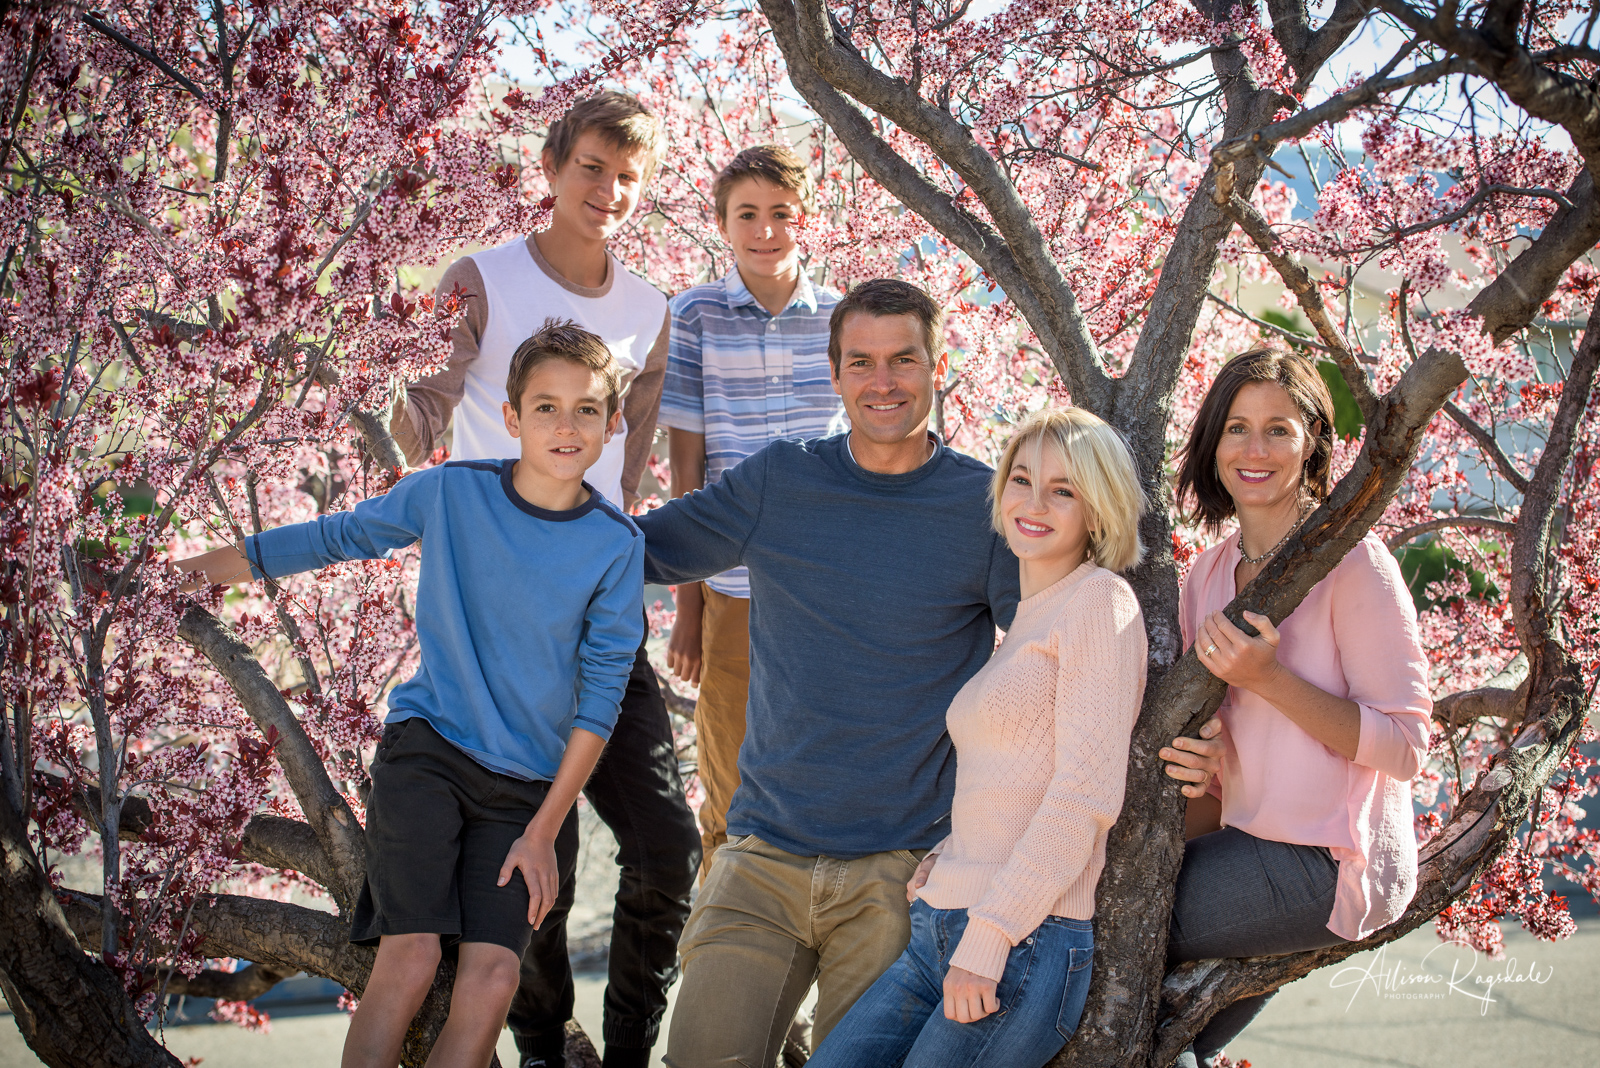 Hughes Family Portraits in Durango Colorado